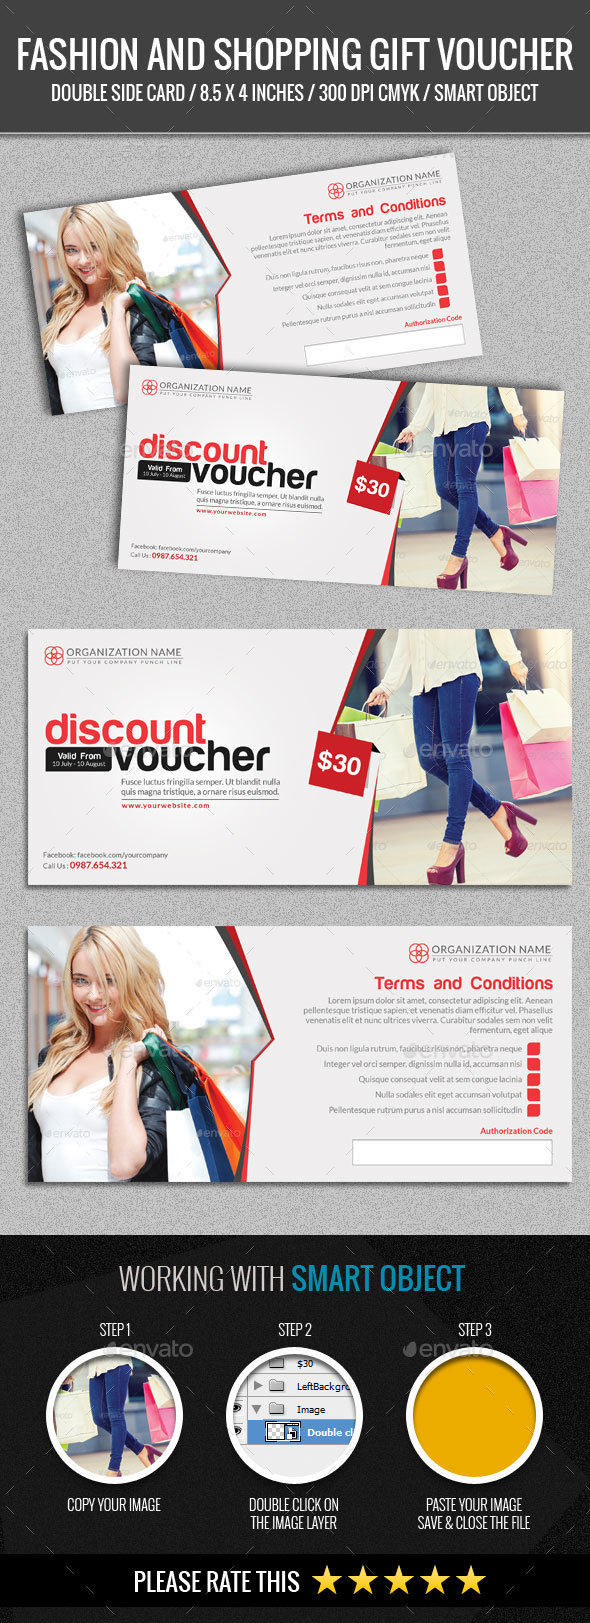 Fashion and Shopping Gift Voucher - Loyalty Cards Cards & Invites